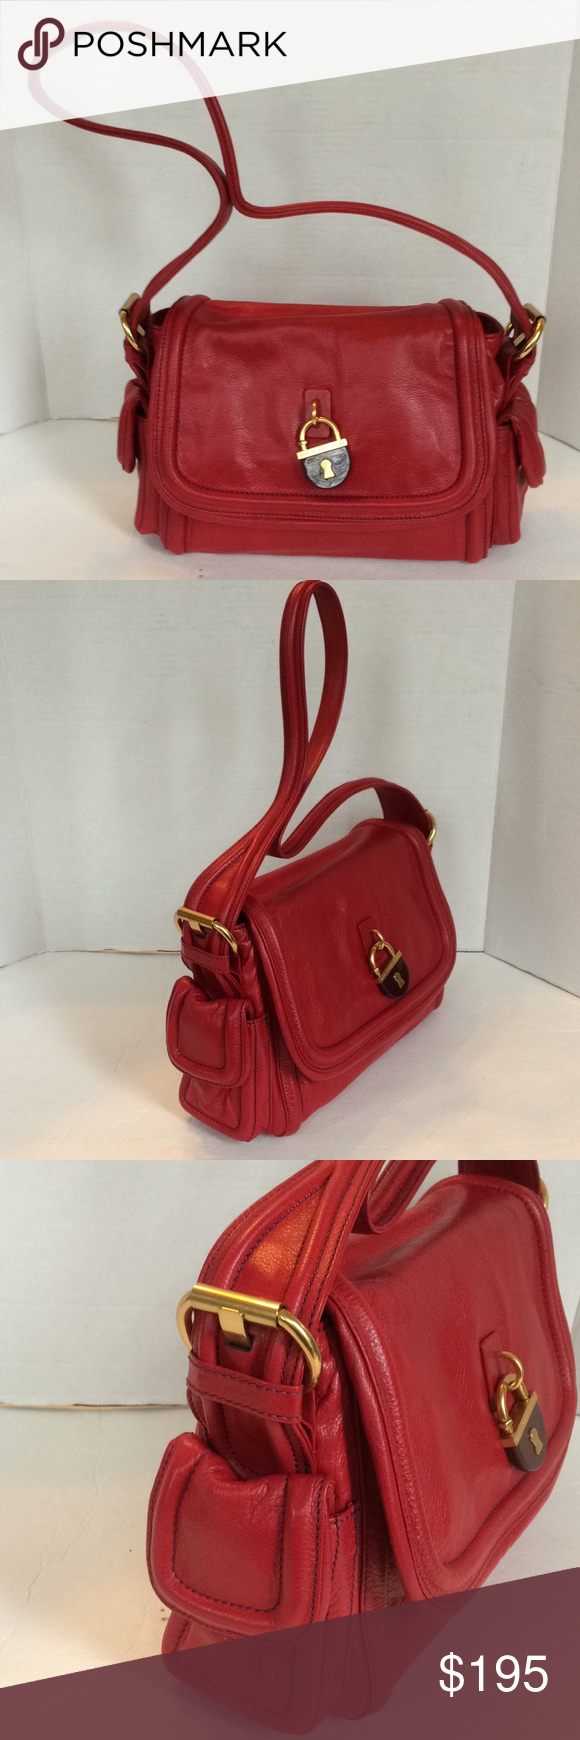 f052d6c5aa5 New Marc By Marc Jacobs Leather Shoulder Bag This beautiful new bag is  simply stunning. It features Buttery Soft 100% red cow hide leather with  gold tone ...